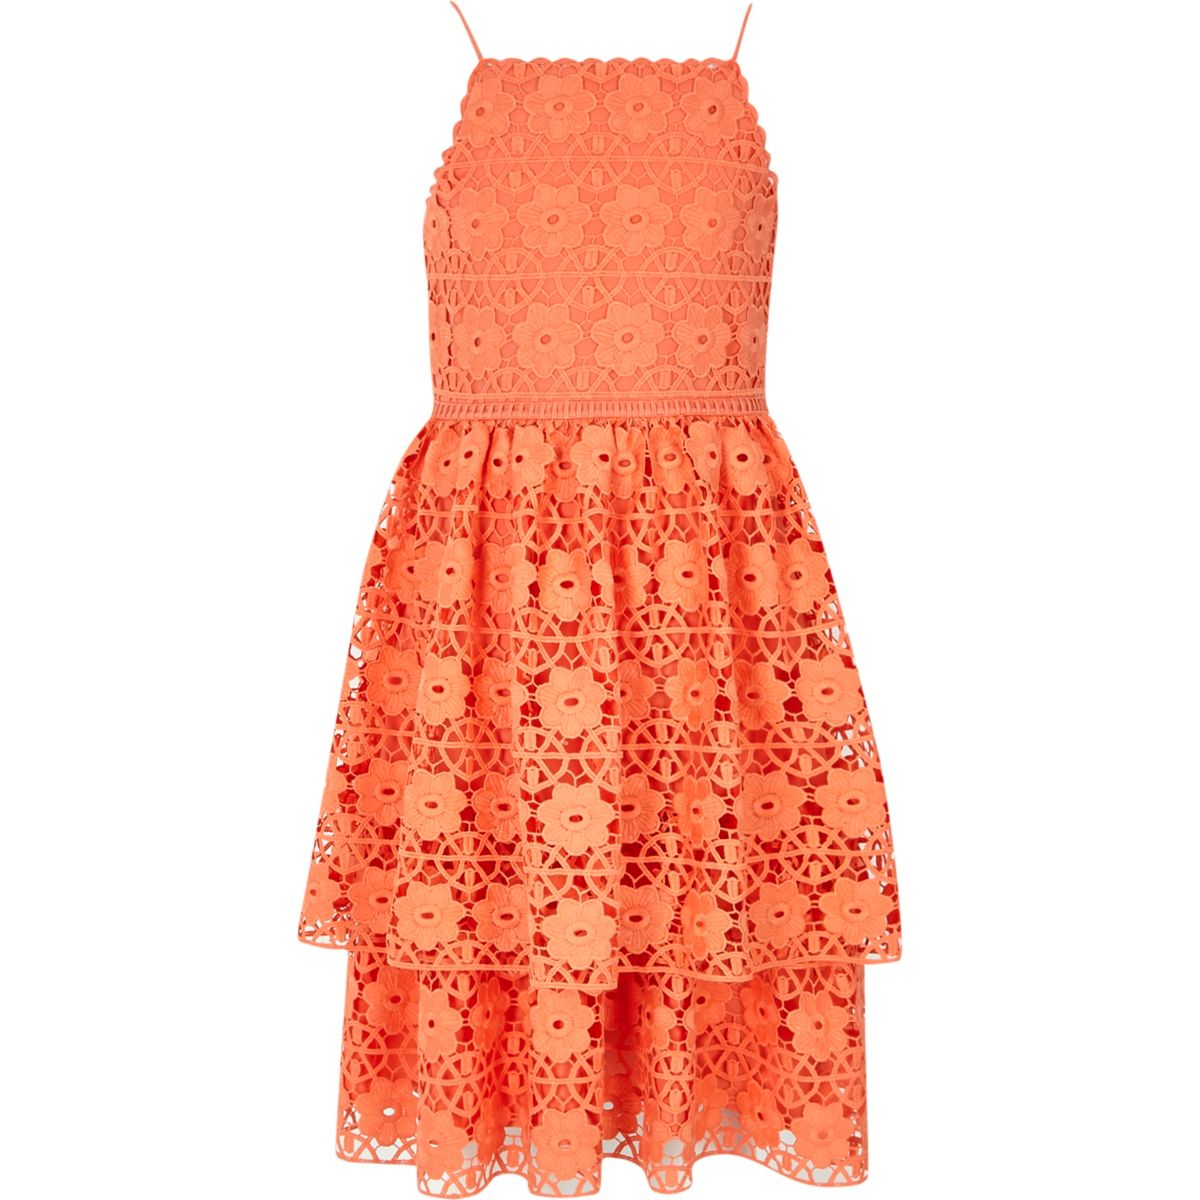 Robe orange en dentelle à volants pour fille